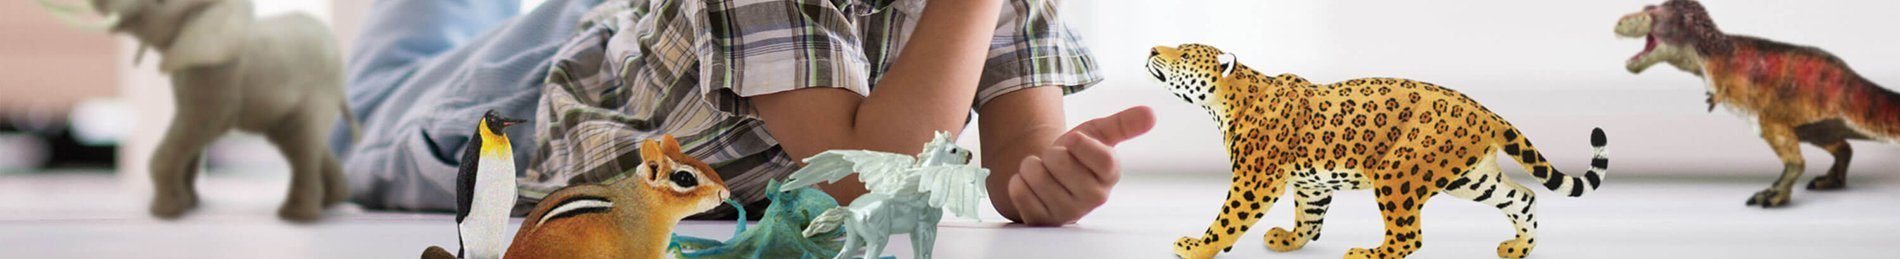 Safari Ltd's Toys That Teach® | Safari Ltd®